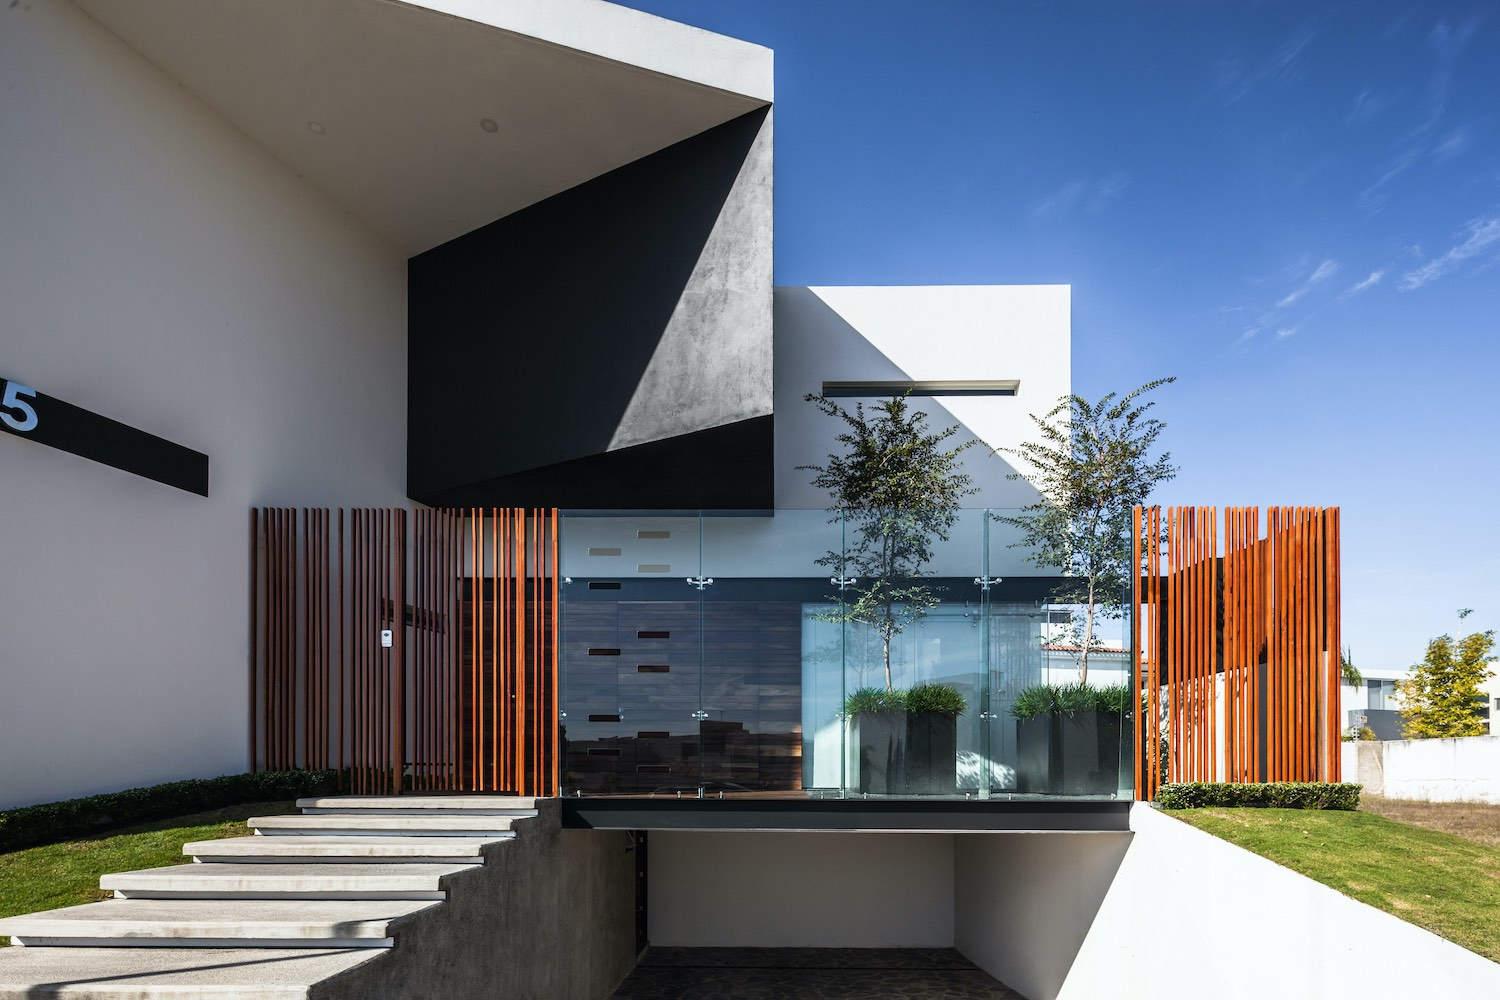 house facade with white stucco and glass